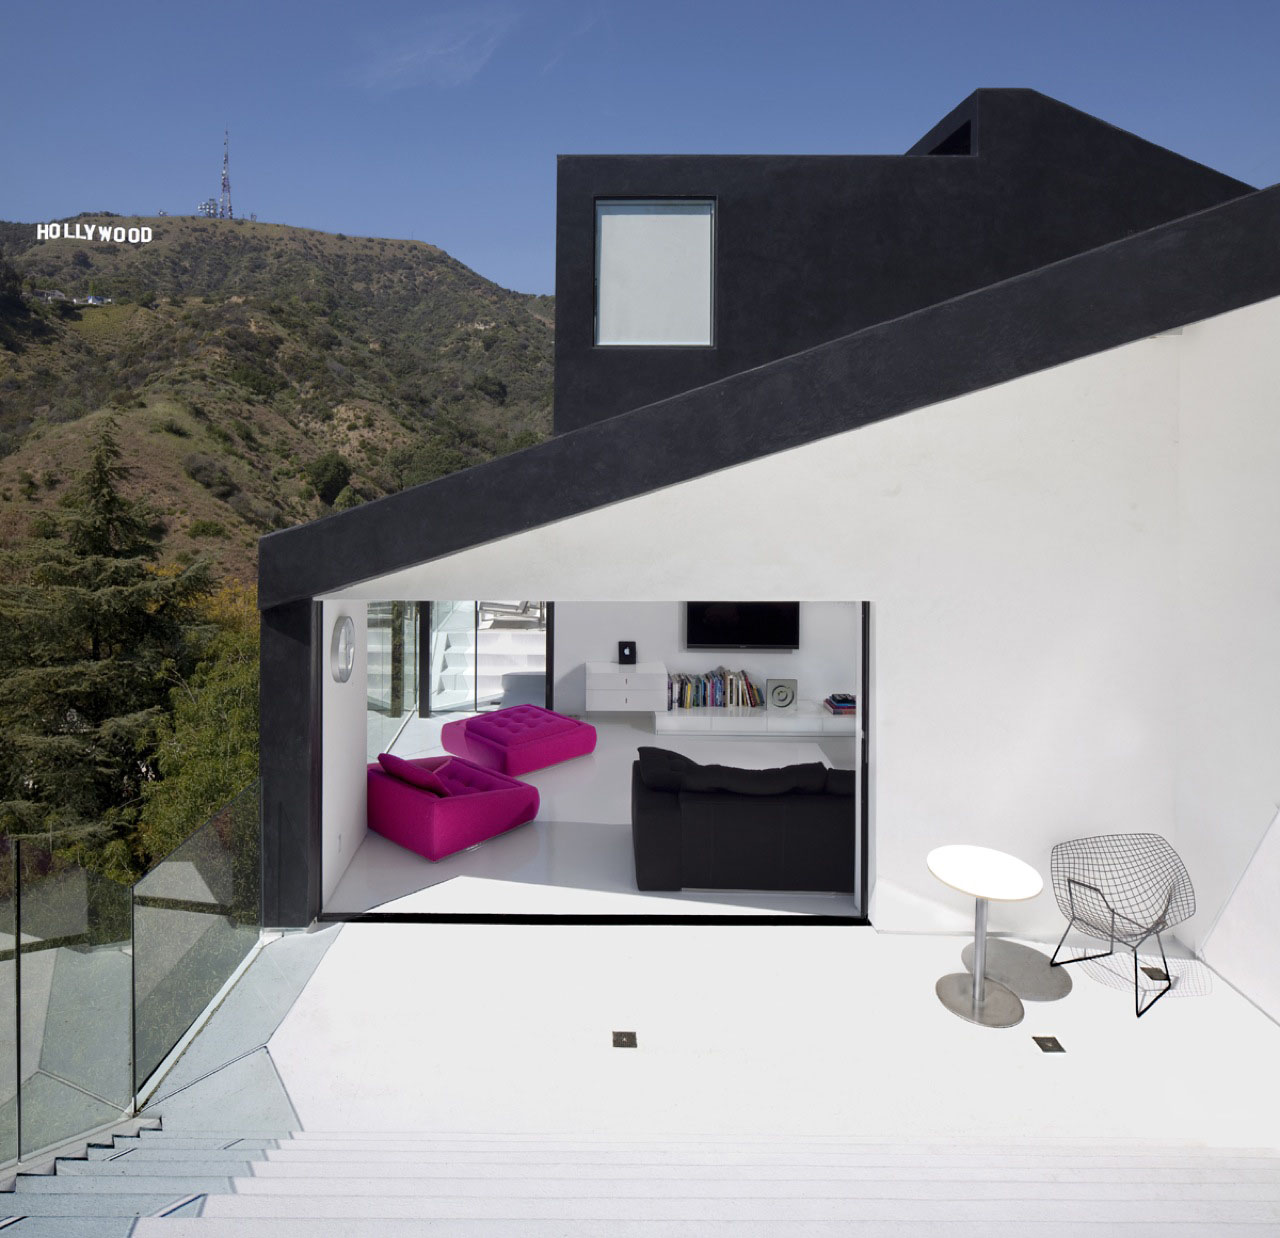 'Nakahouse', a single family residence by XTEN architecture  located in Hollywood hills, California, USA. 01